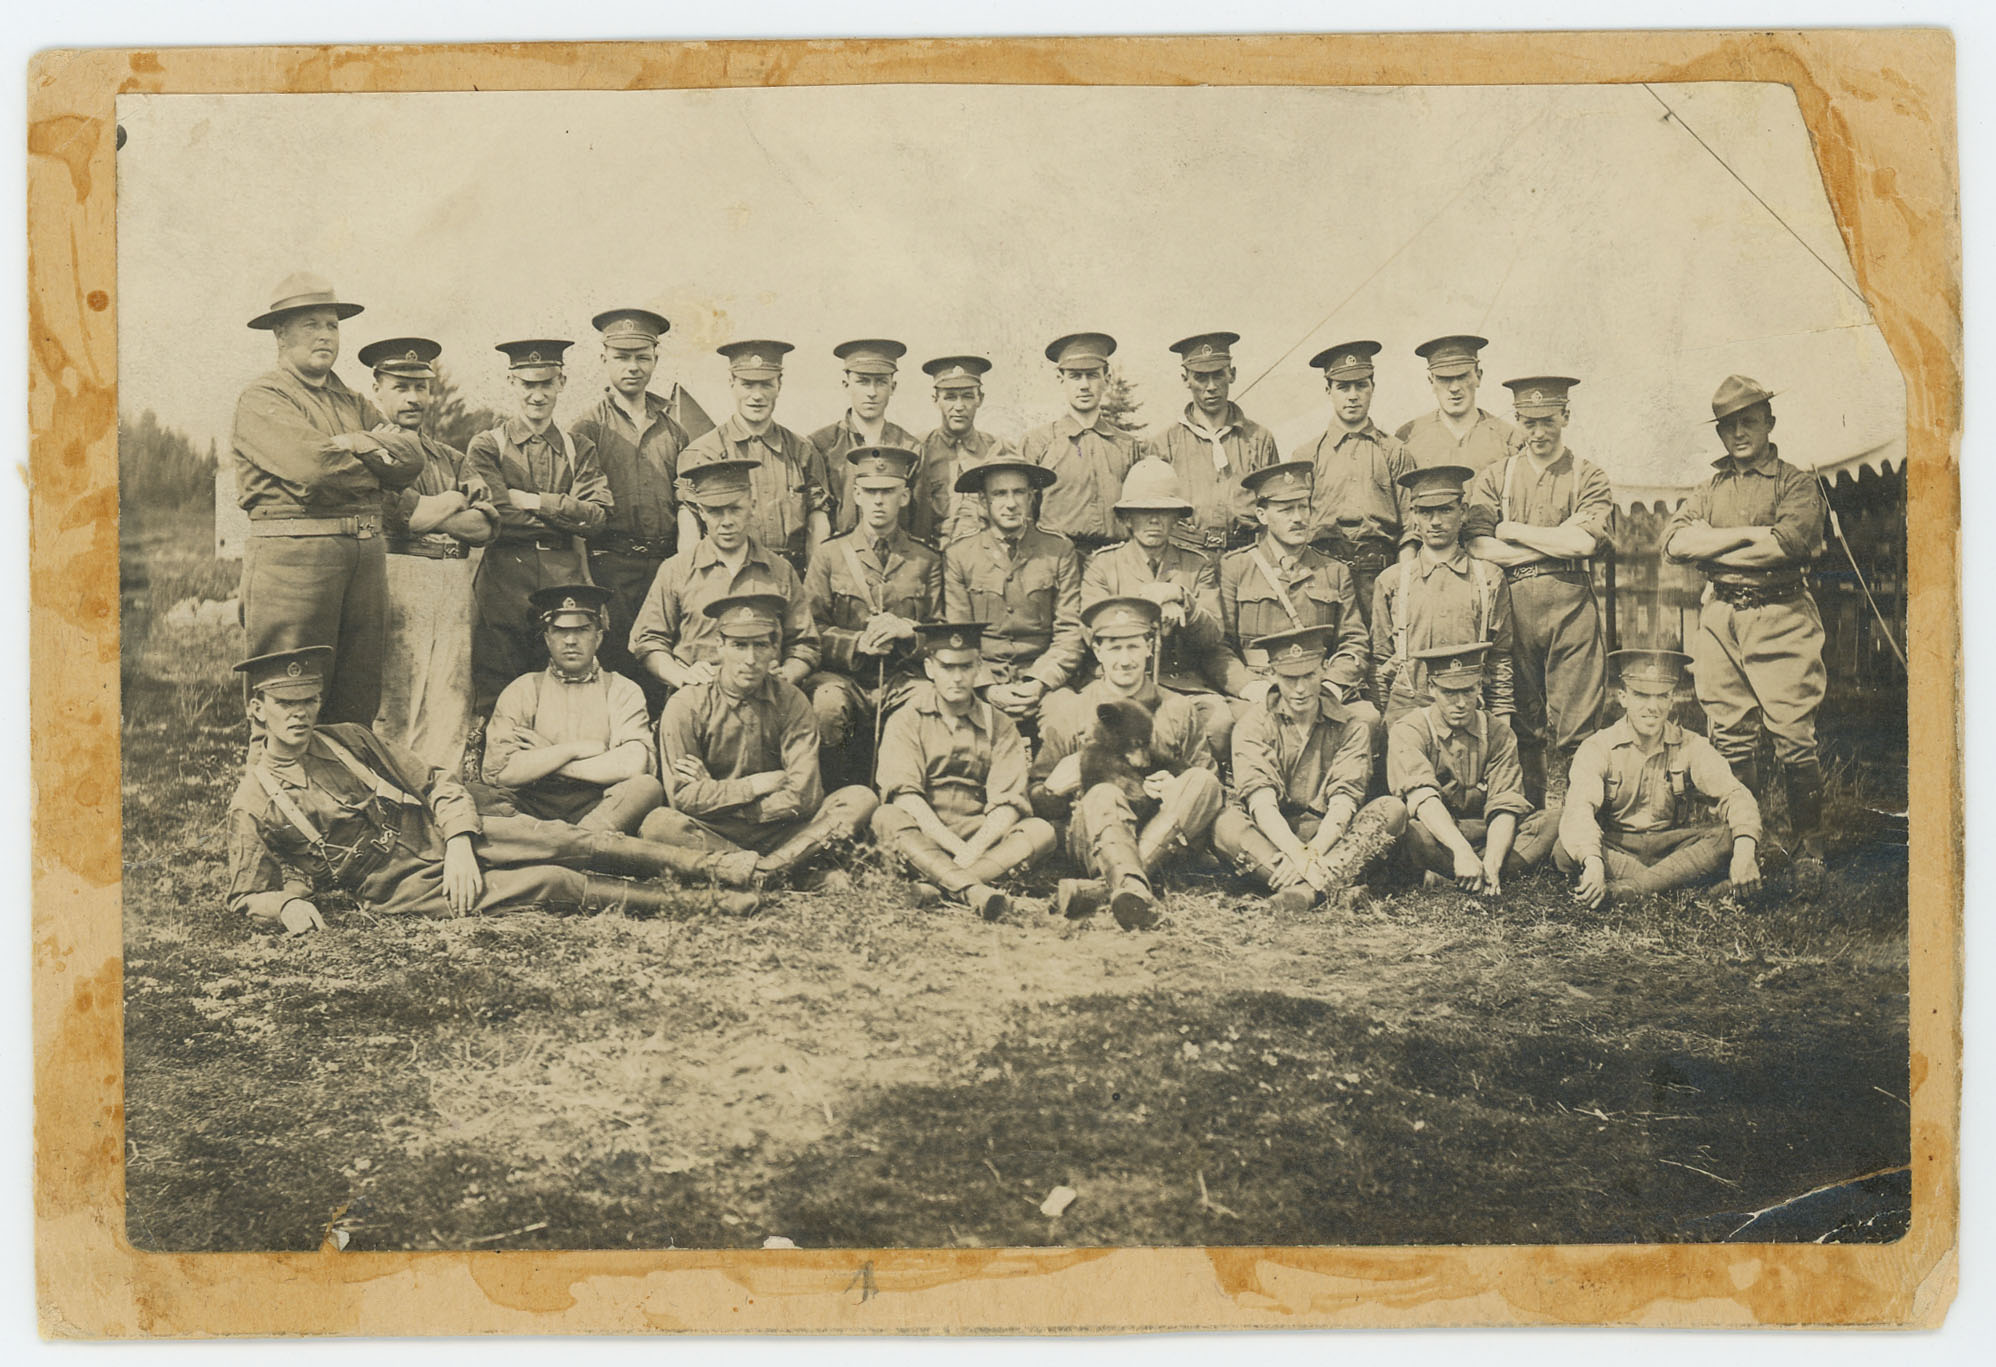 Winnie With the 2nd Canadian Infantry Brigade